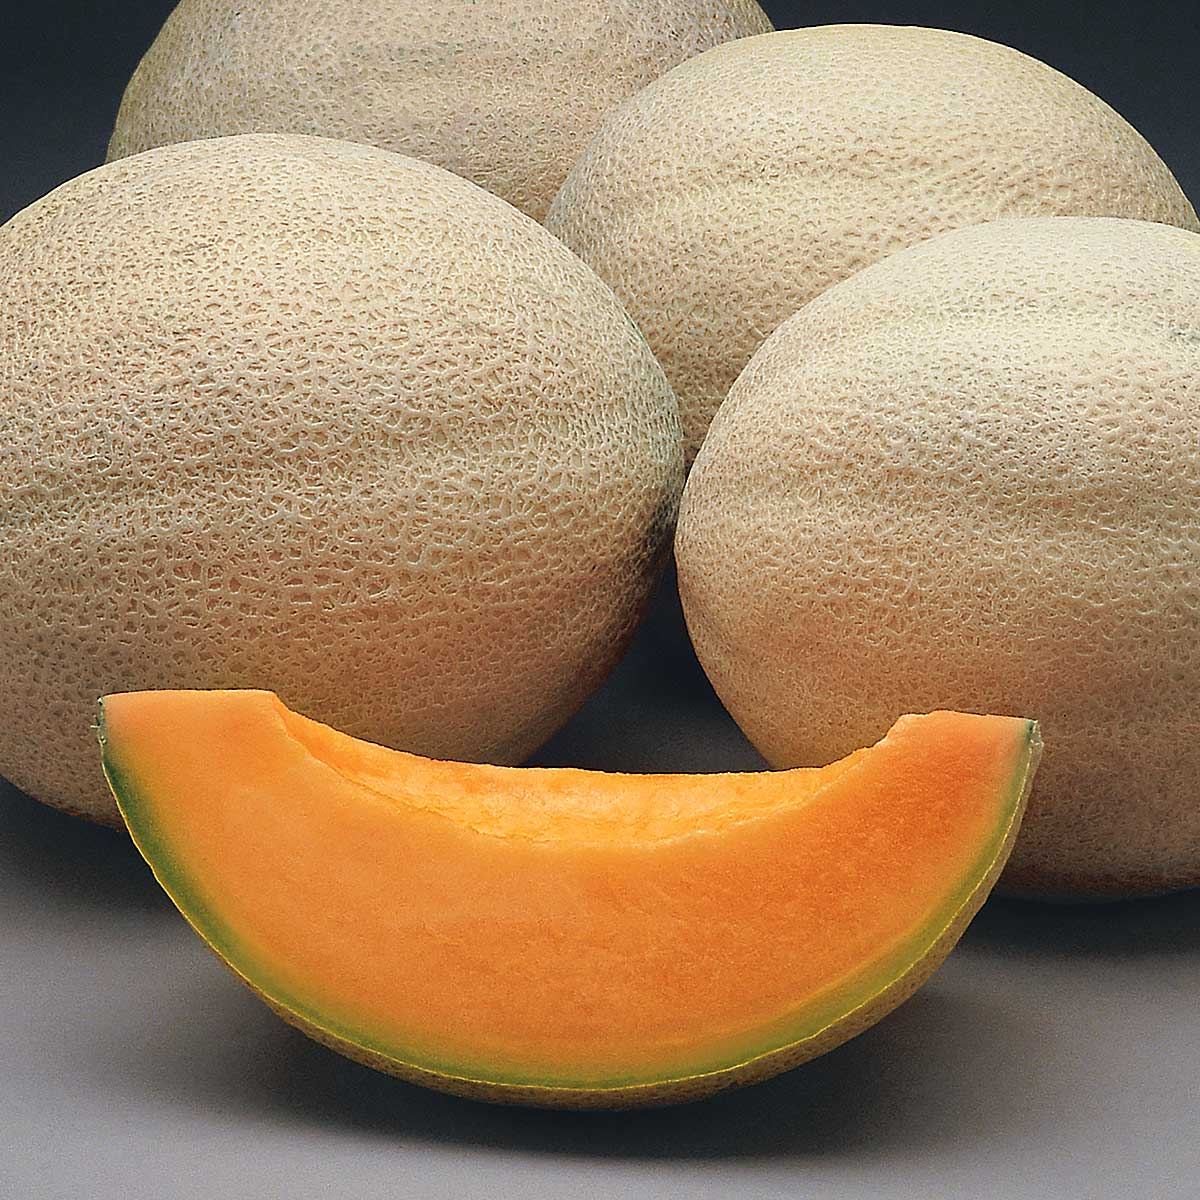 Athena Melon Information, Recipes and Facts